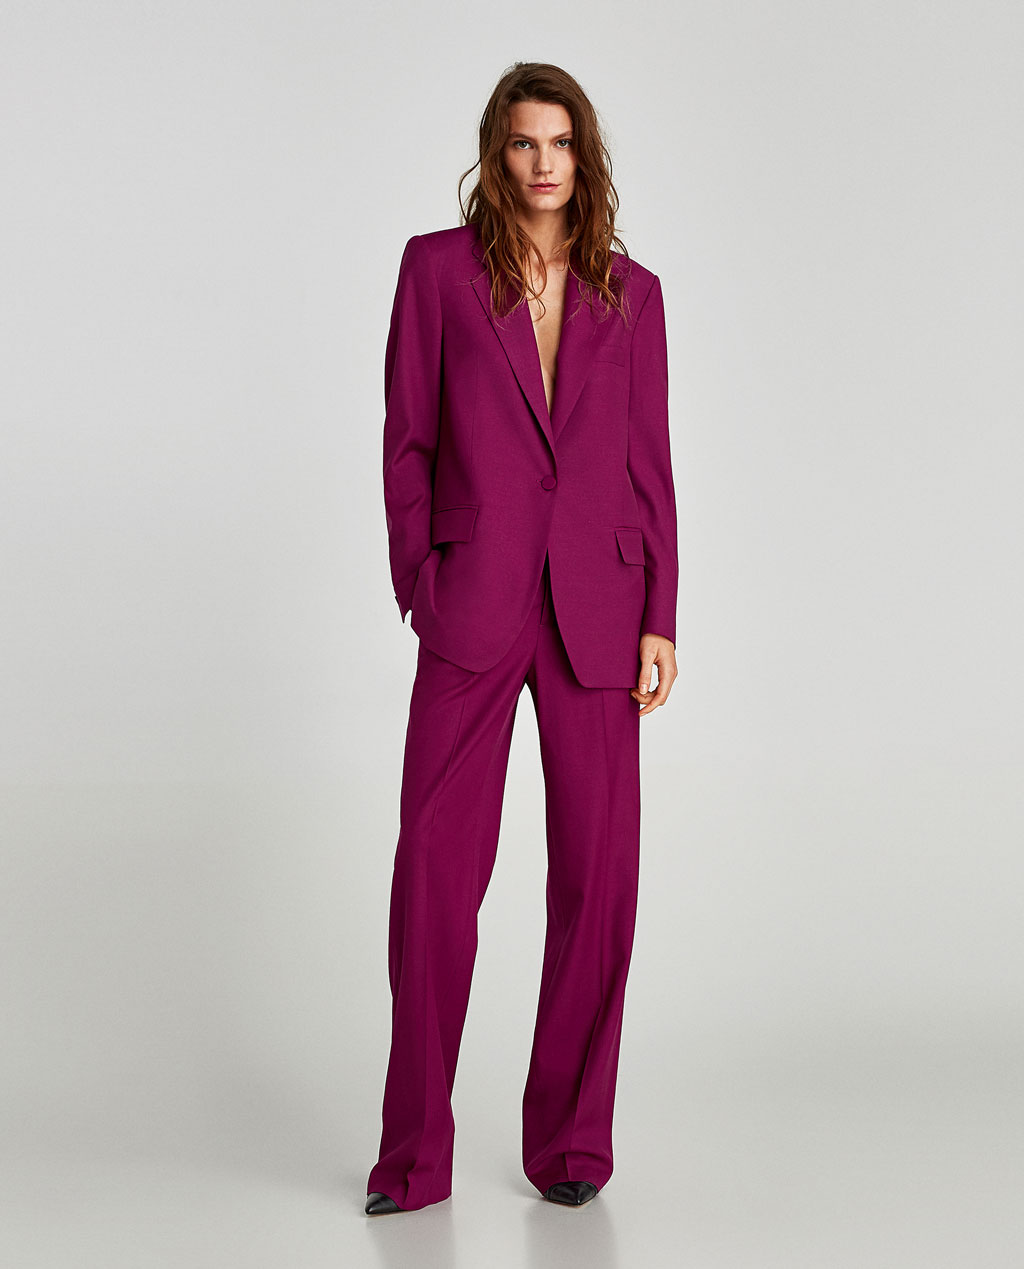 Zara purple suit